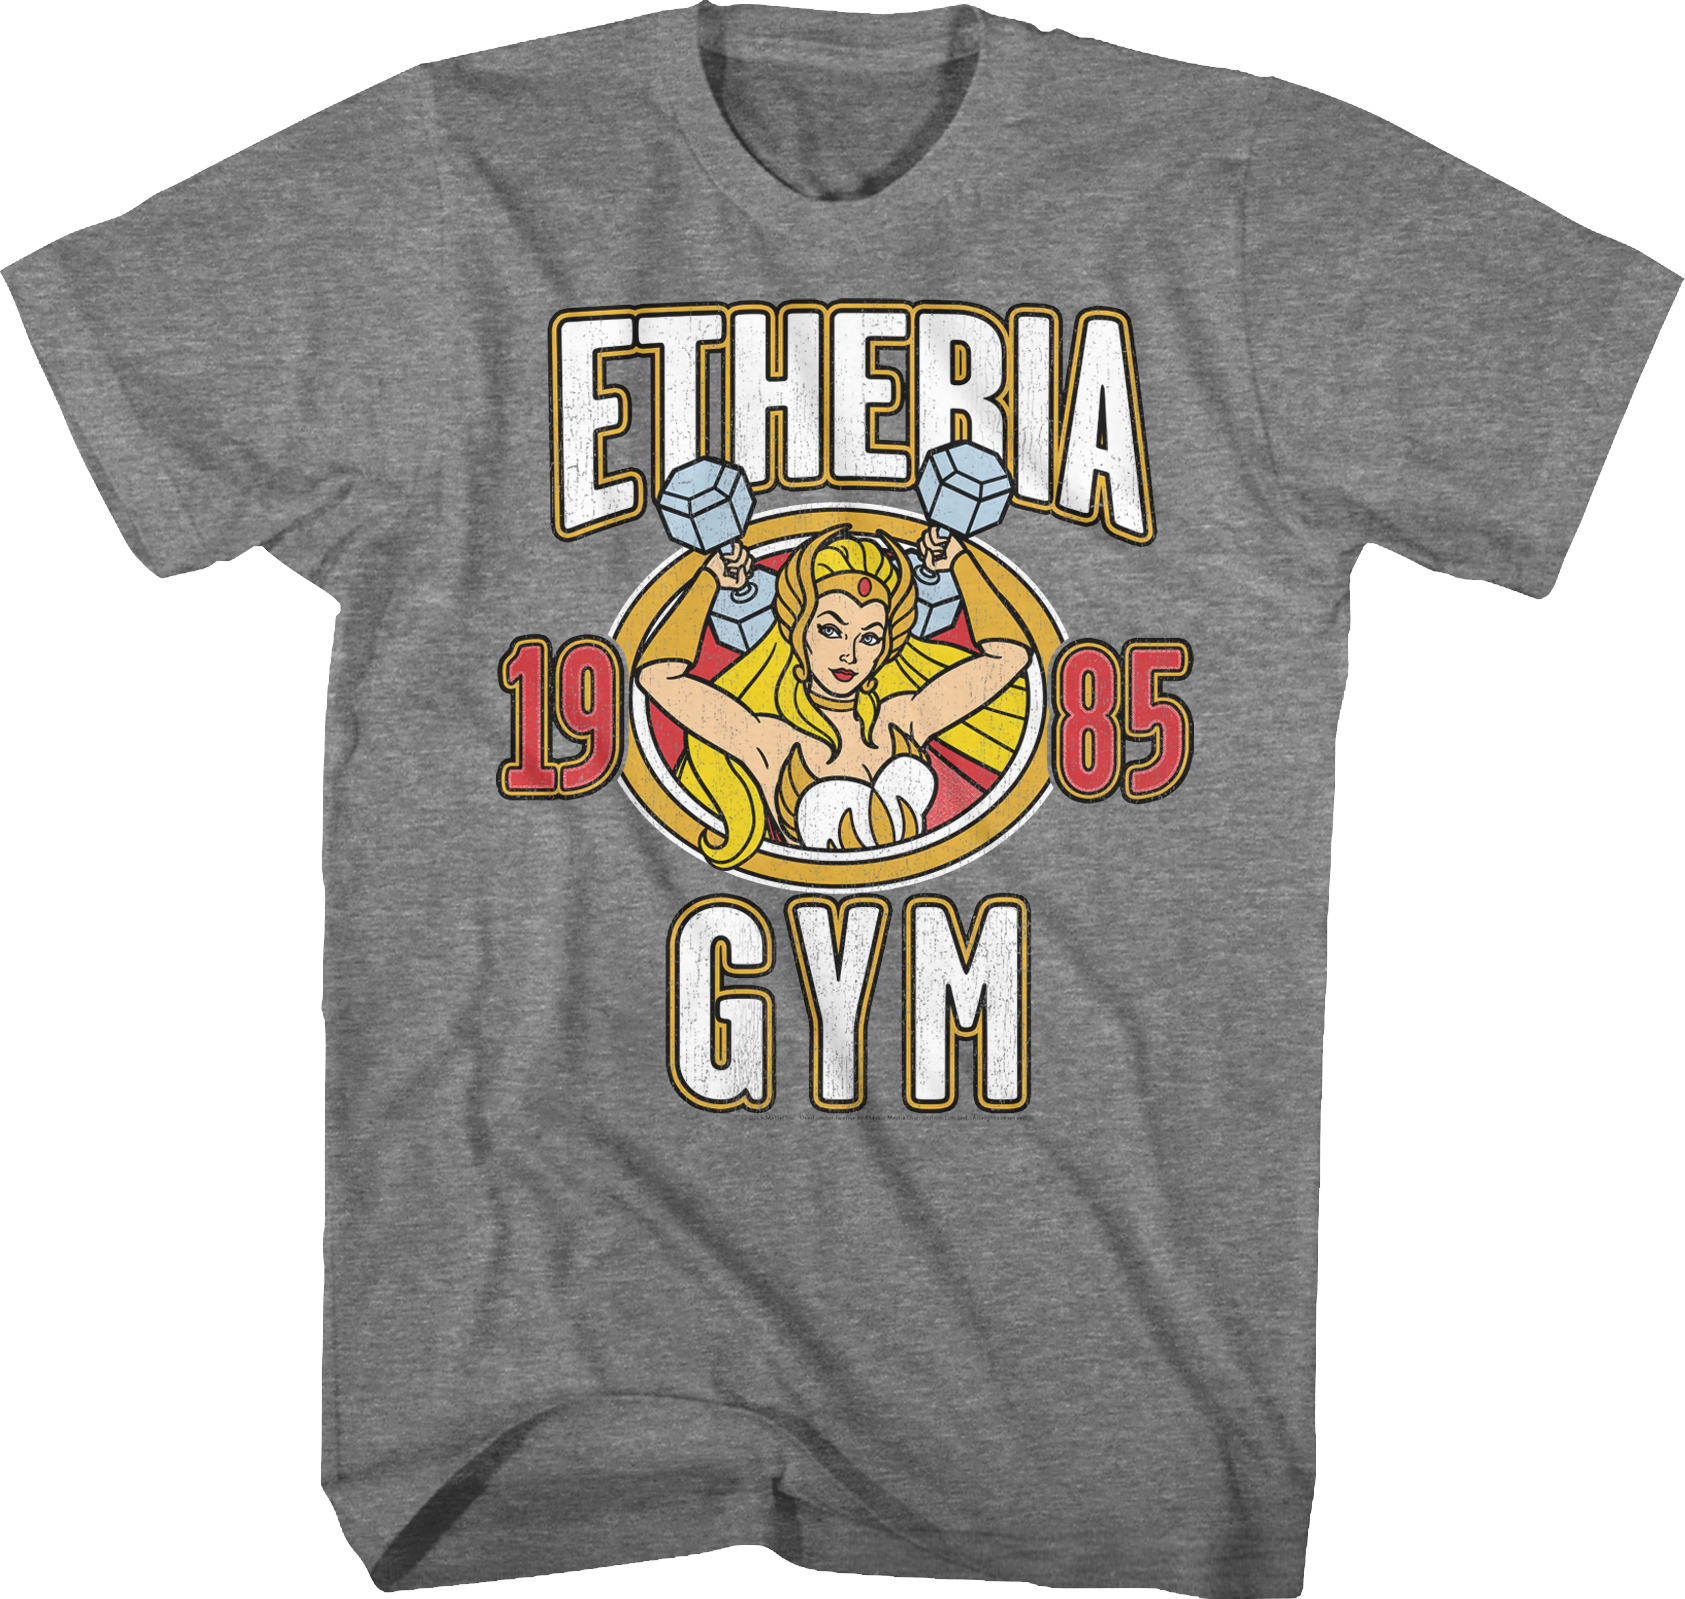 She-Ra Etheria Gym Masters of the Universe T-Shirt